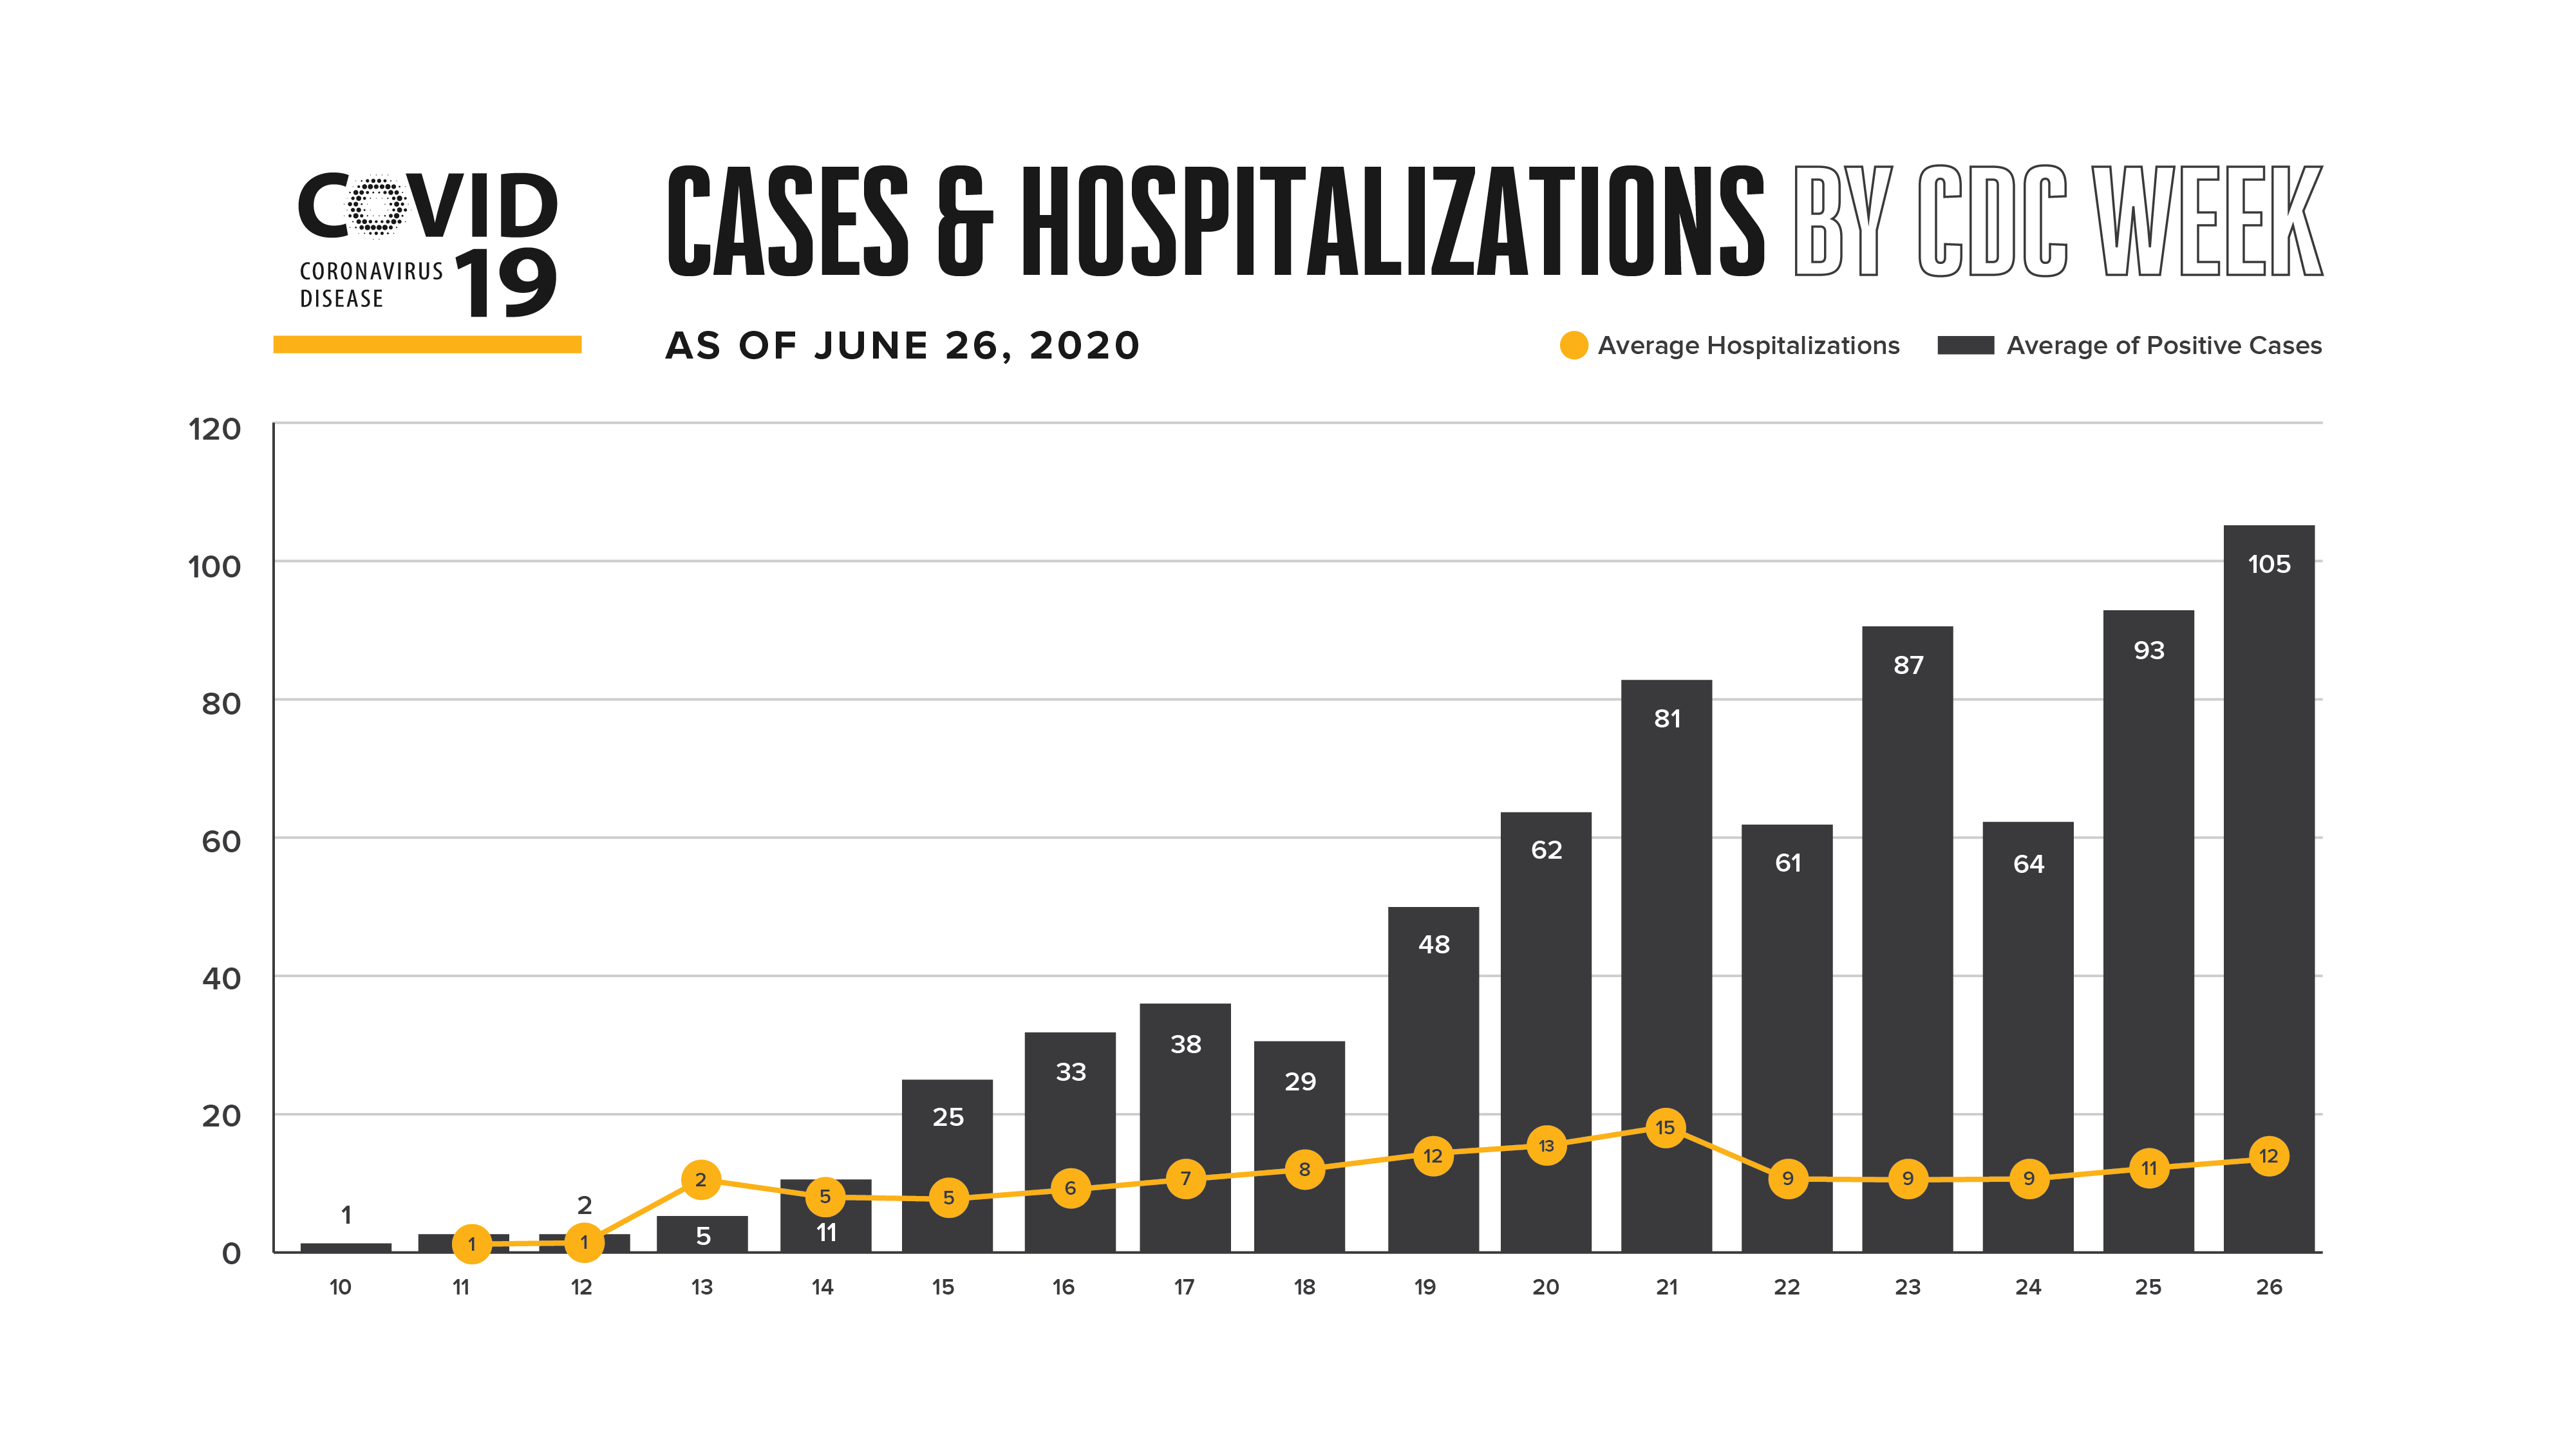 cases and avg hospitalizations by CDC Week